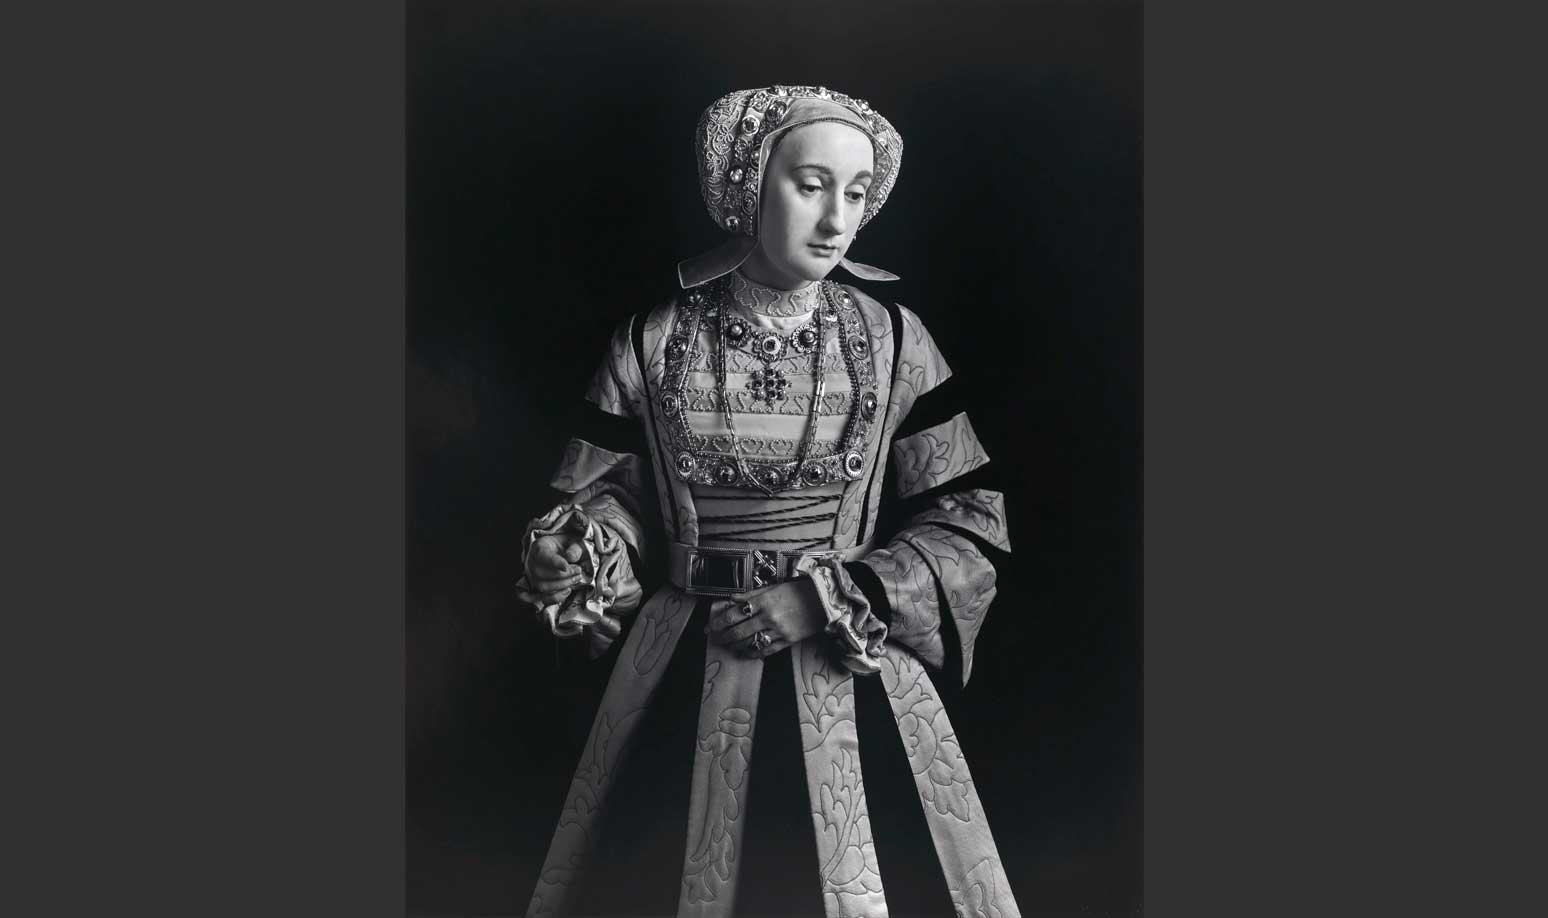 Hiroshi Sugimoto, Anne of Cleves, 1999